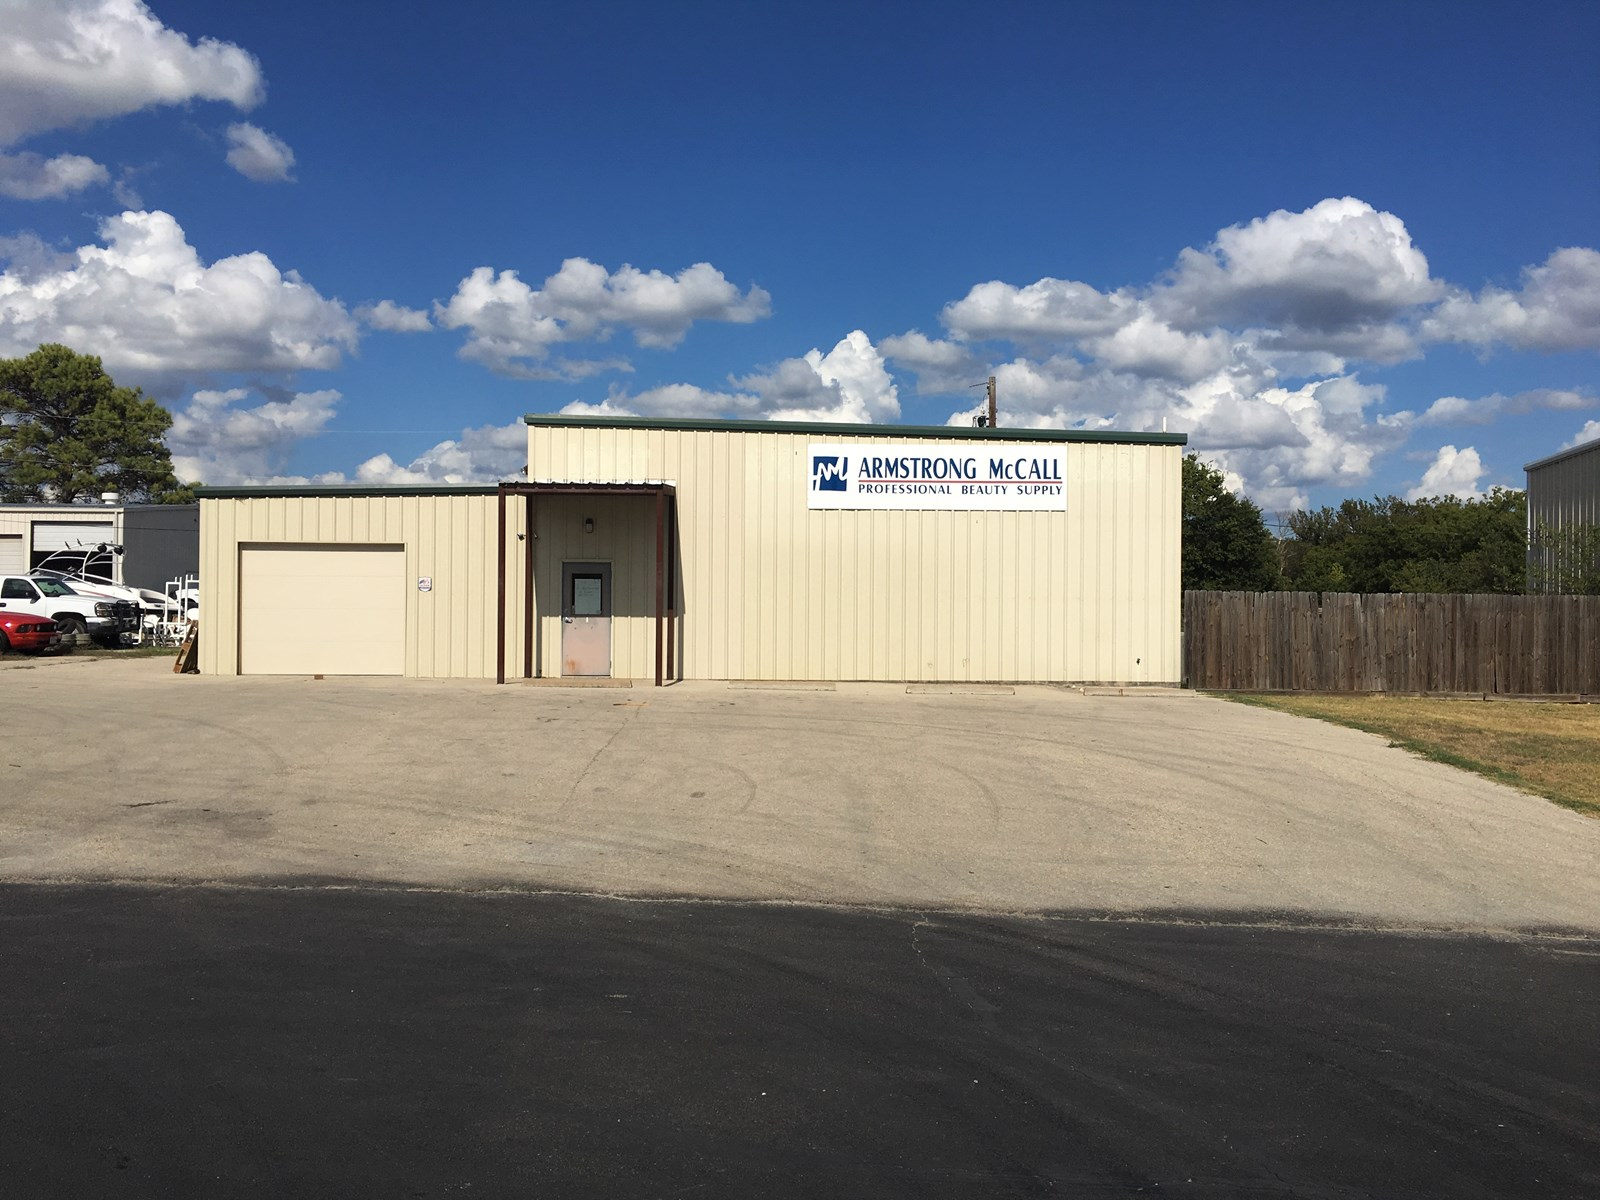 Commercial Building for Sale or Lease in Early, TX